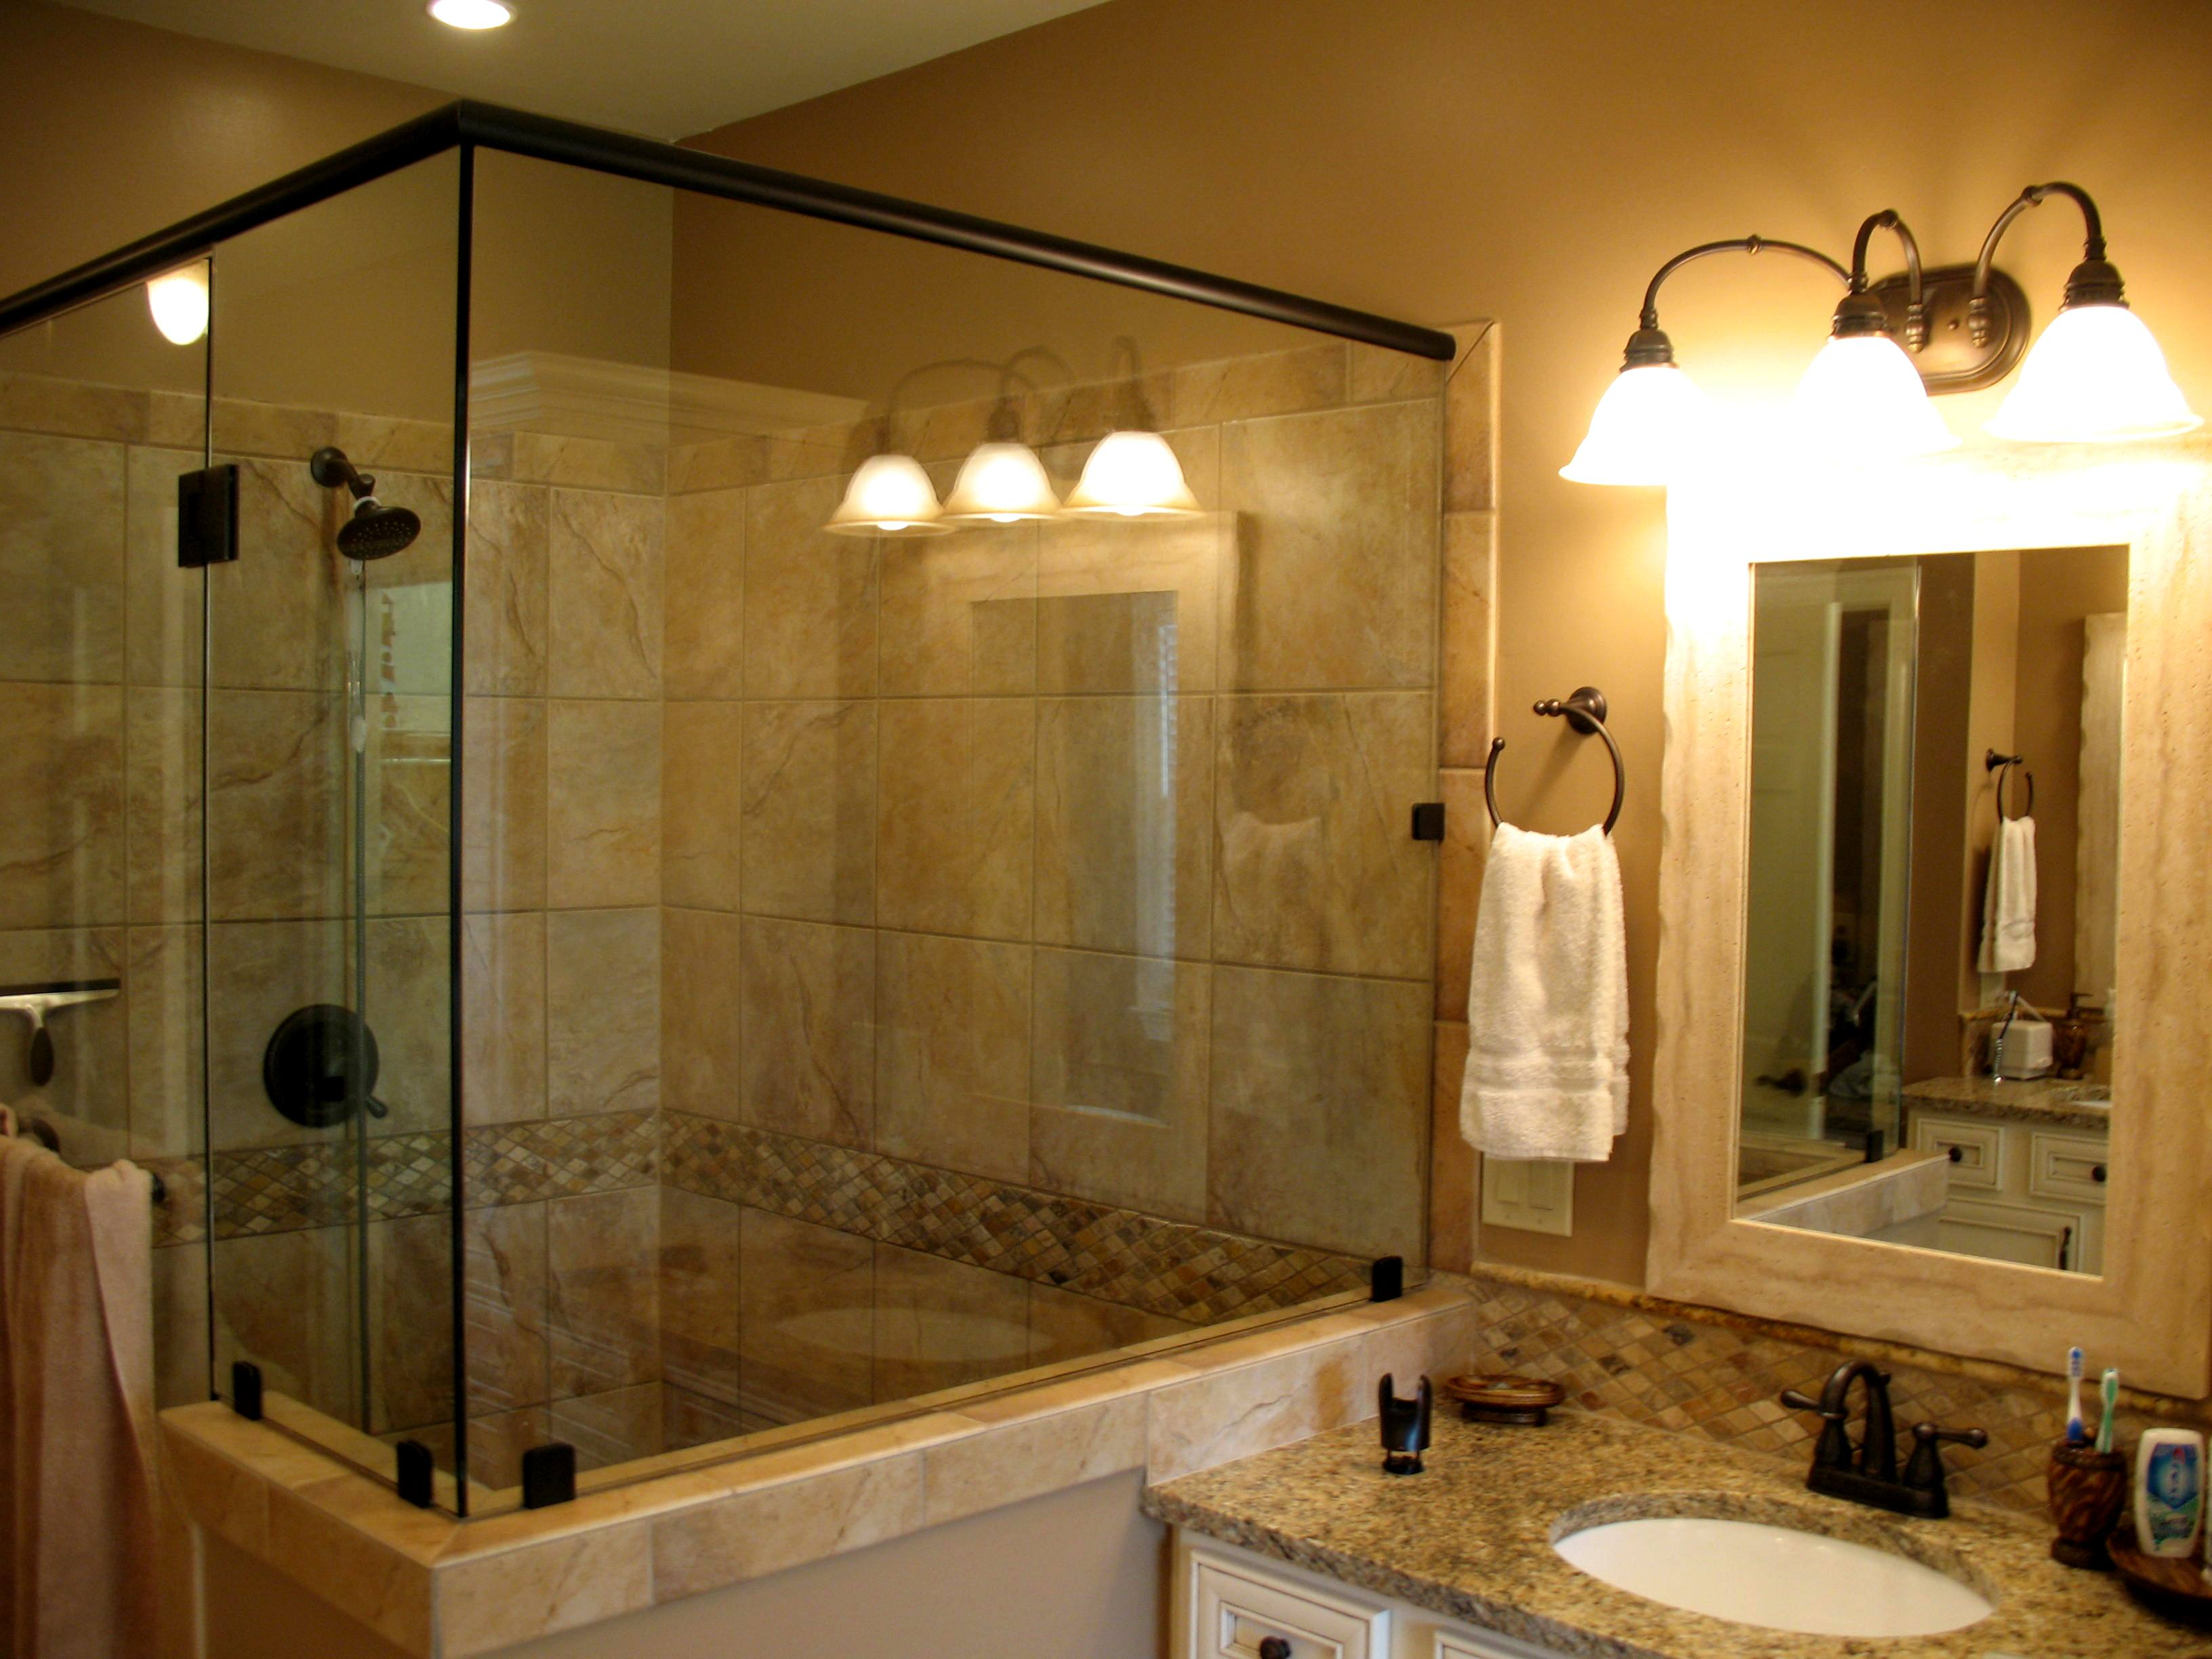 Betsy and ray's master bathroom remodel